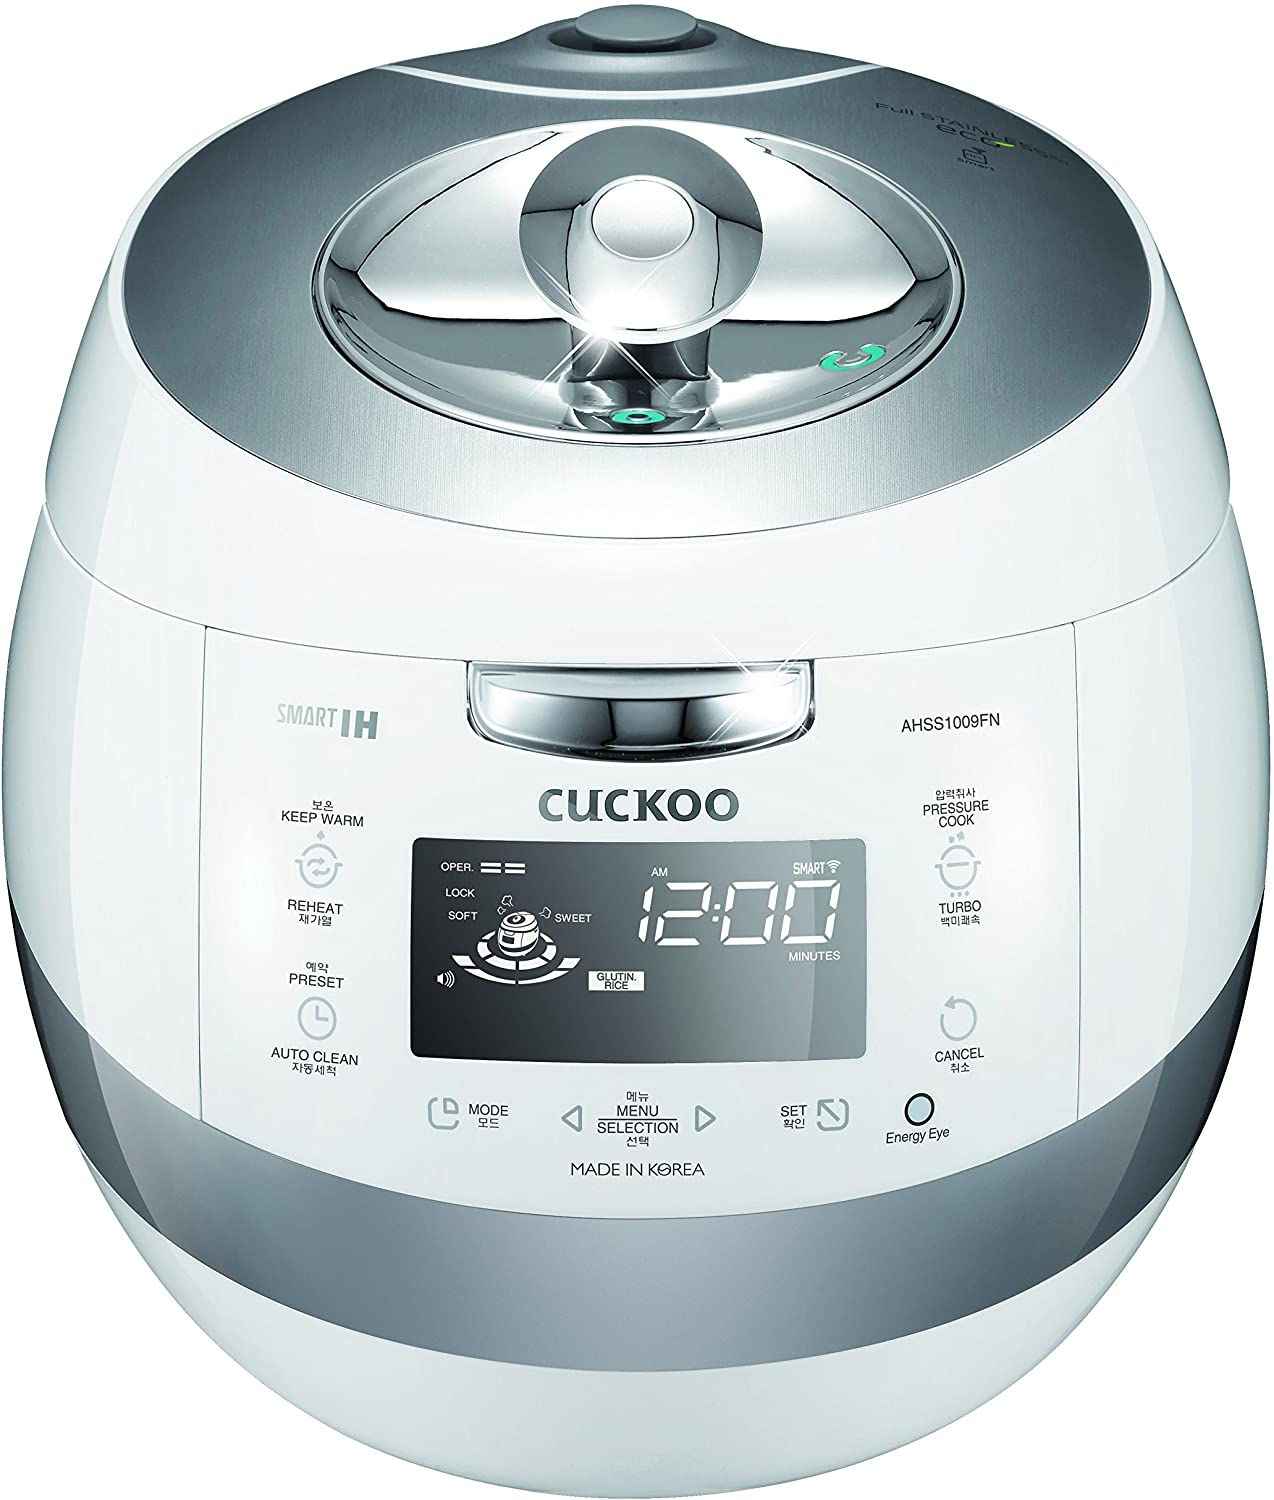 Cuckoo Electric Induction Heating Pressure Rice Cooker Stainless Steel Interior with Non-Stick Coating Fuzzy Logic and Intelligent Cooking, 10 Cup, White